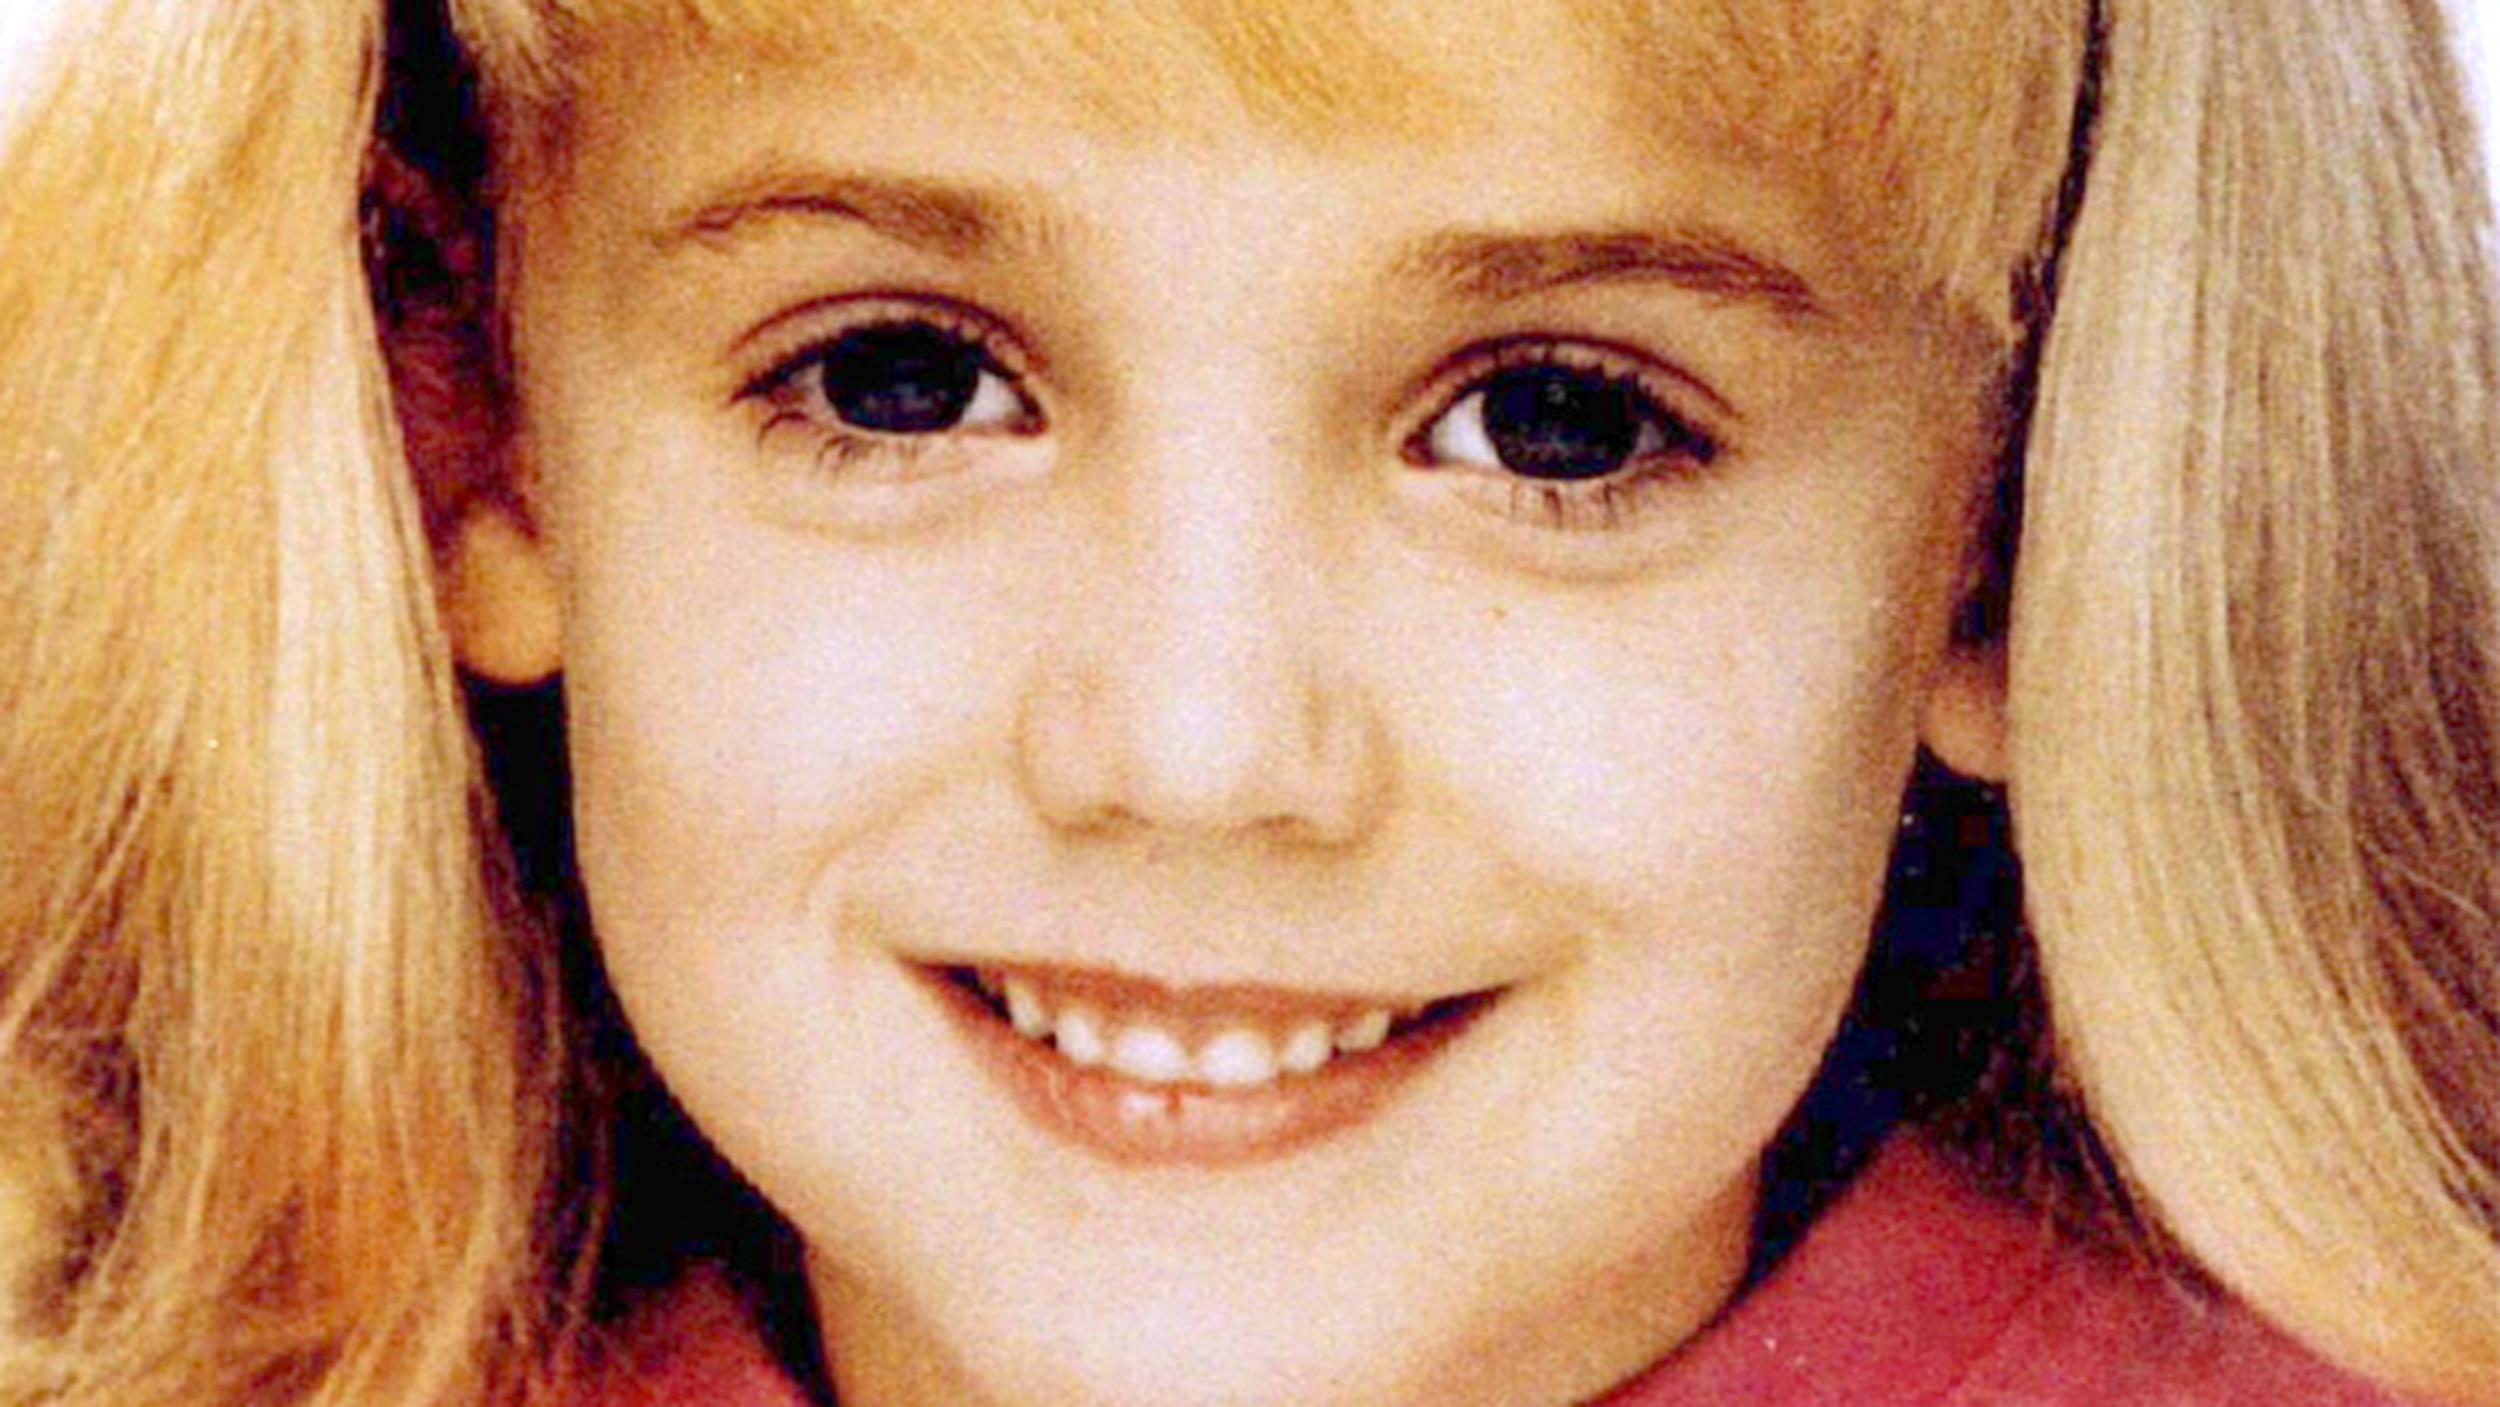 unsolved murder of jonbenet ramsey Jonbenét ramsey: the brutal child murder that still haunts america twenty years on, the unsolved killing of this six-year-old beauty queen is being raked over in three new documentaries.